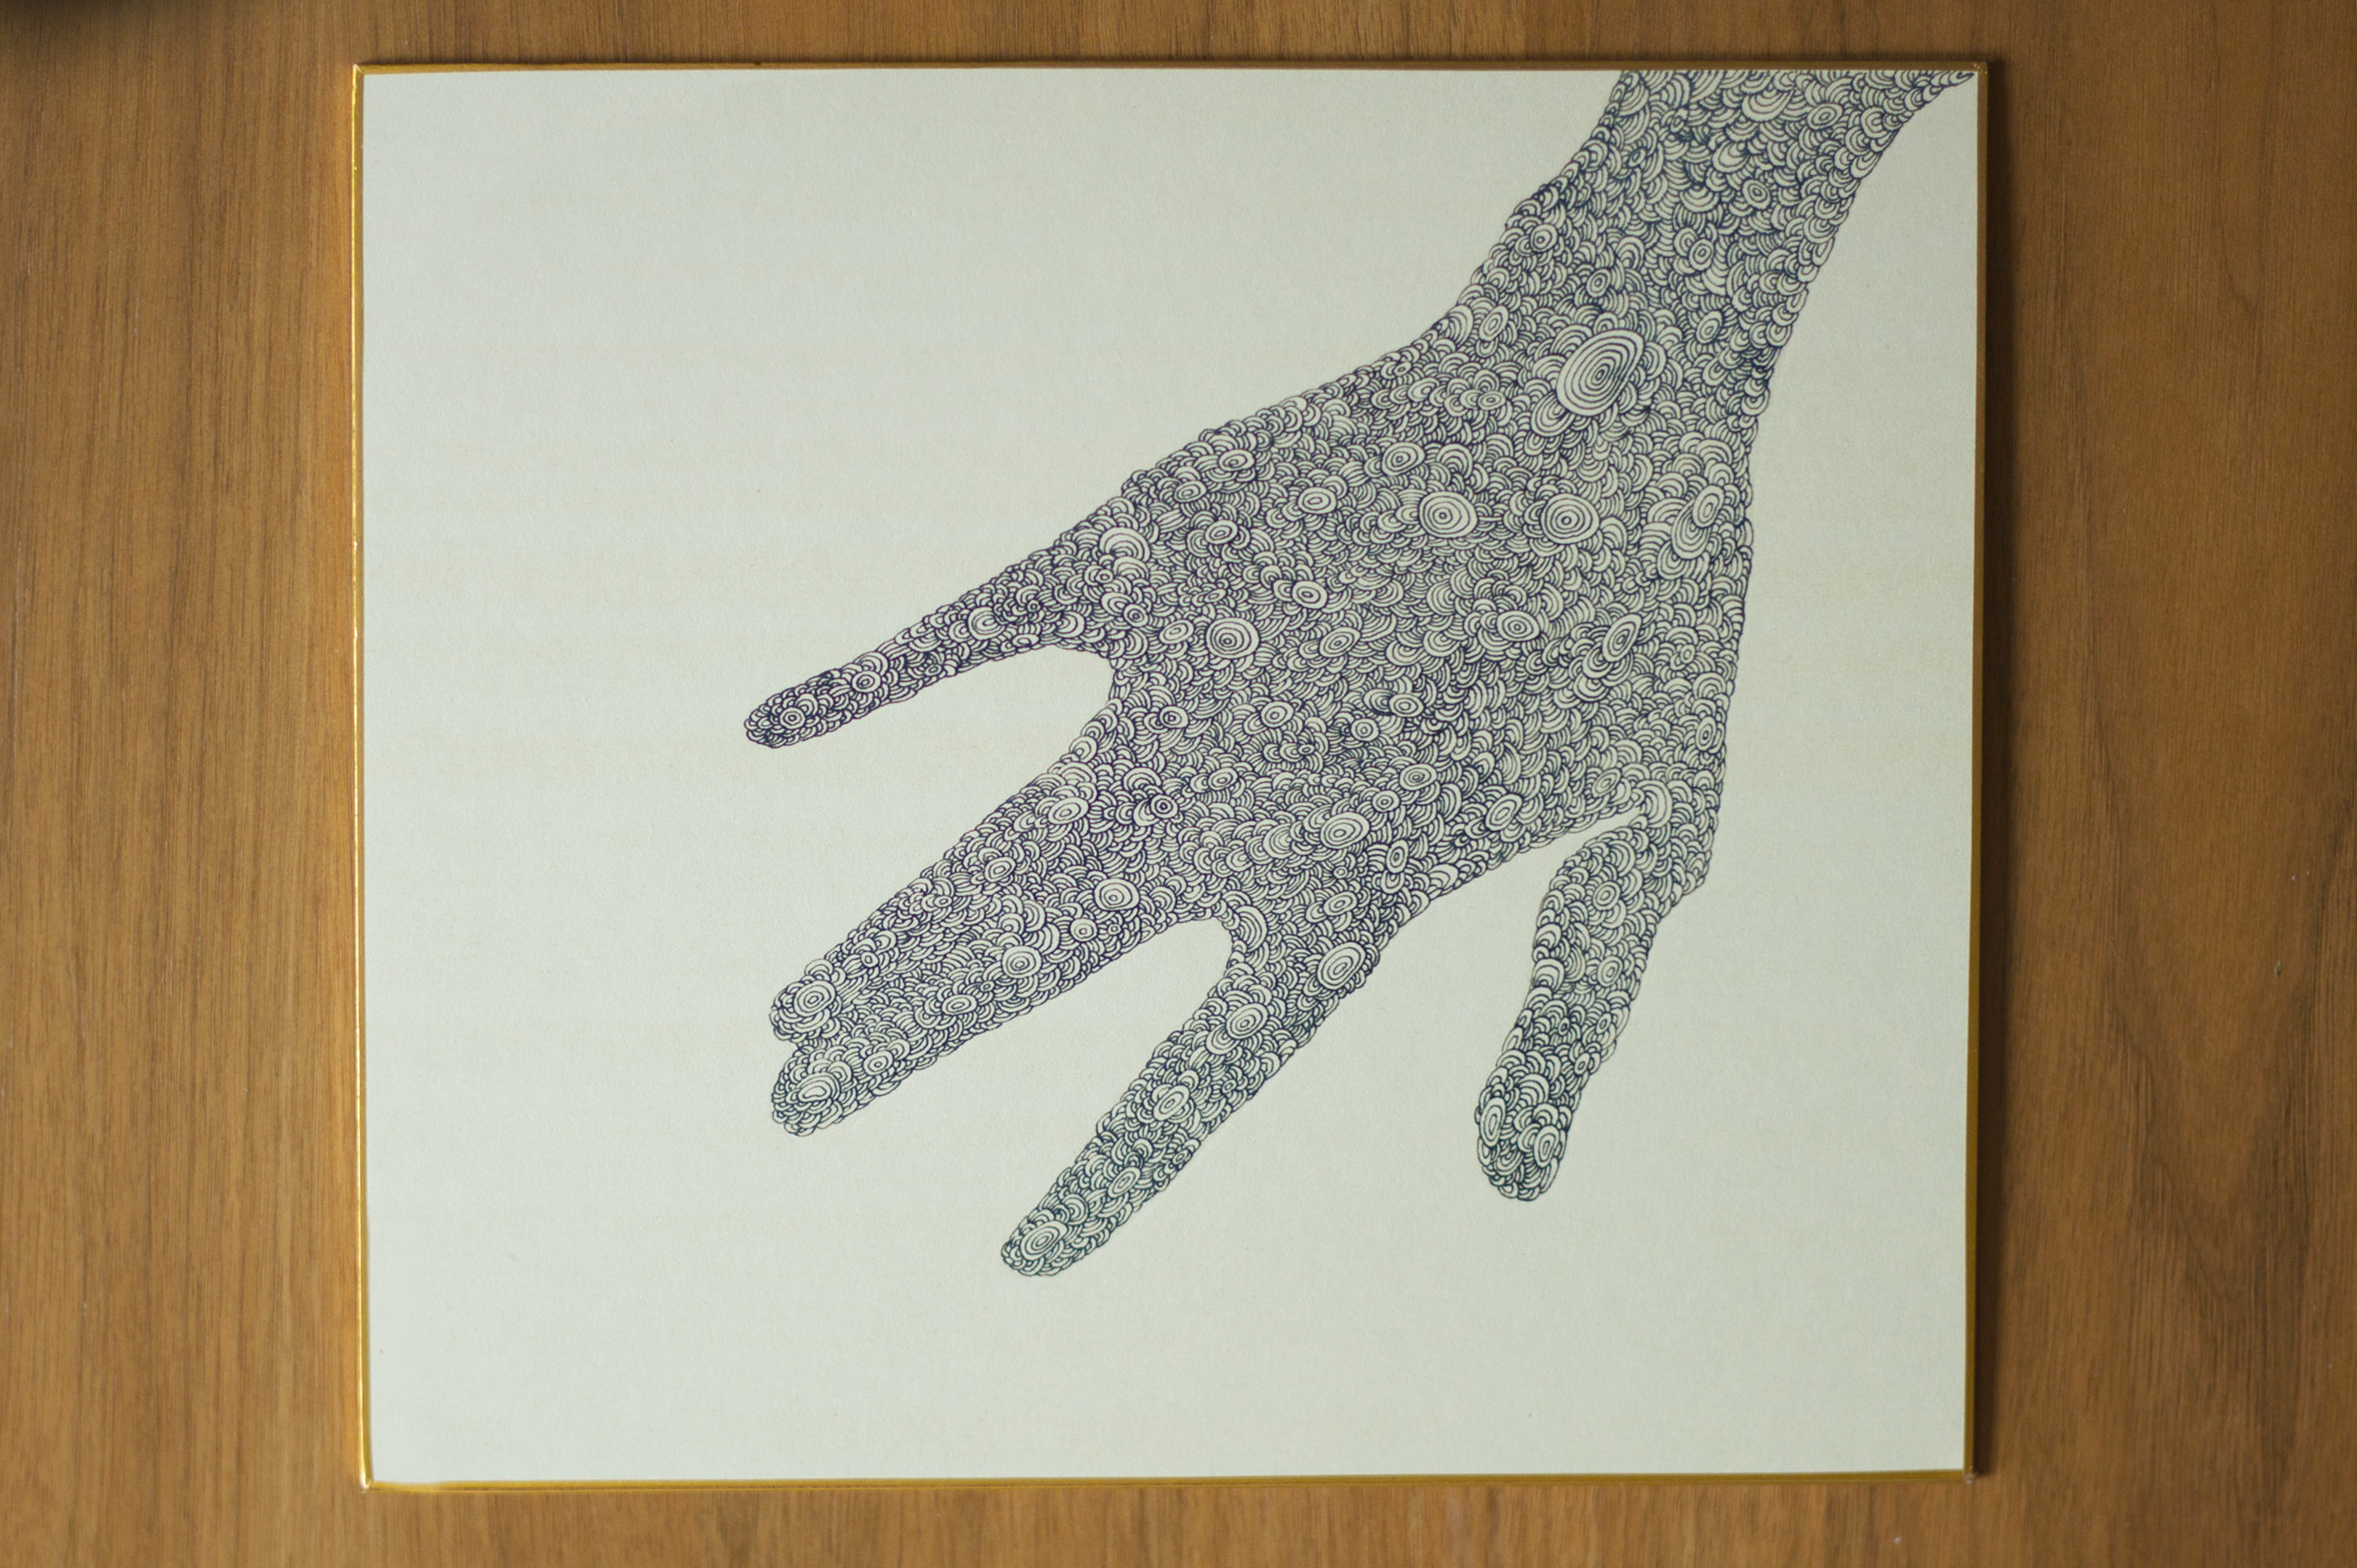 Hand One (Ink on Shikishi Paper, 27cm x 24cm)